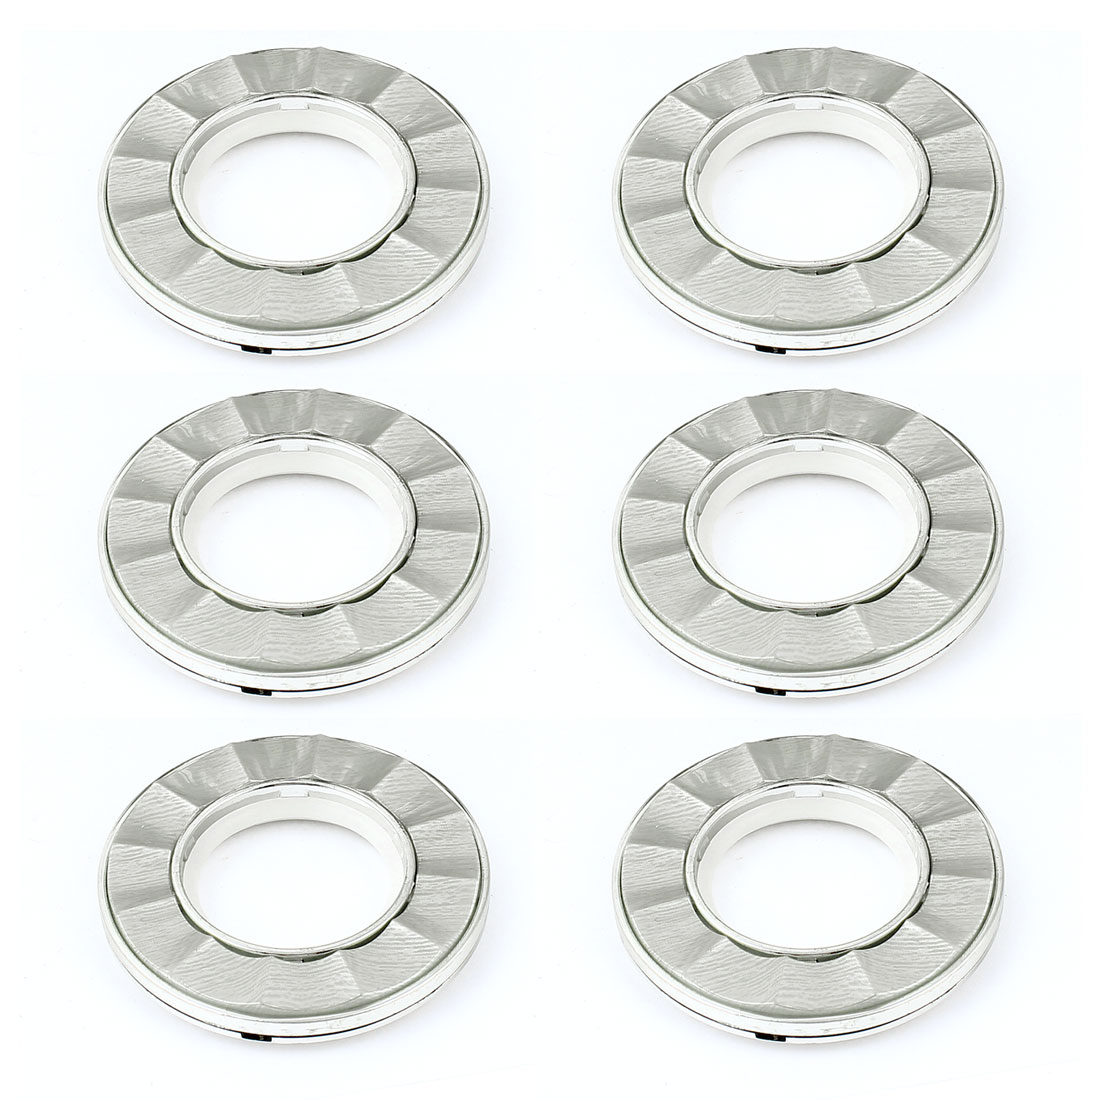 6 Pcs 41mm Inside Dia Silver Tone Plastic Round Curtain Rings